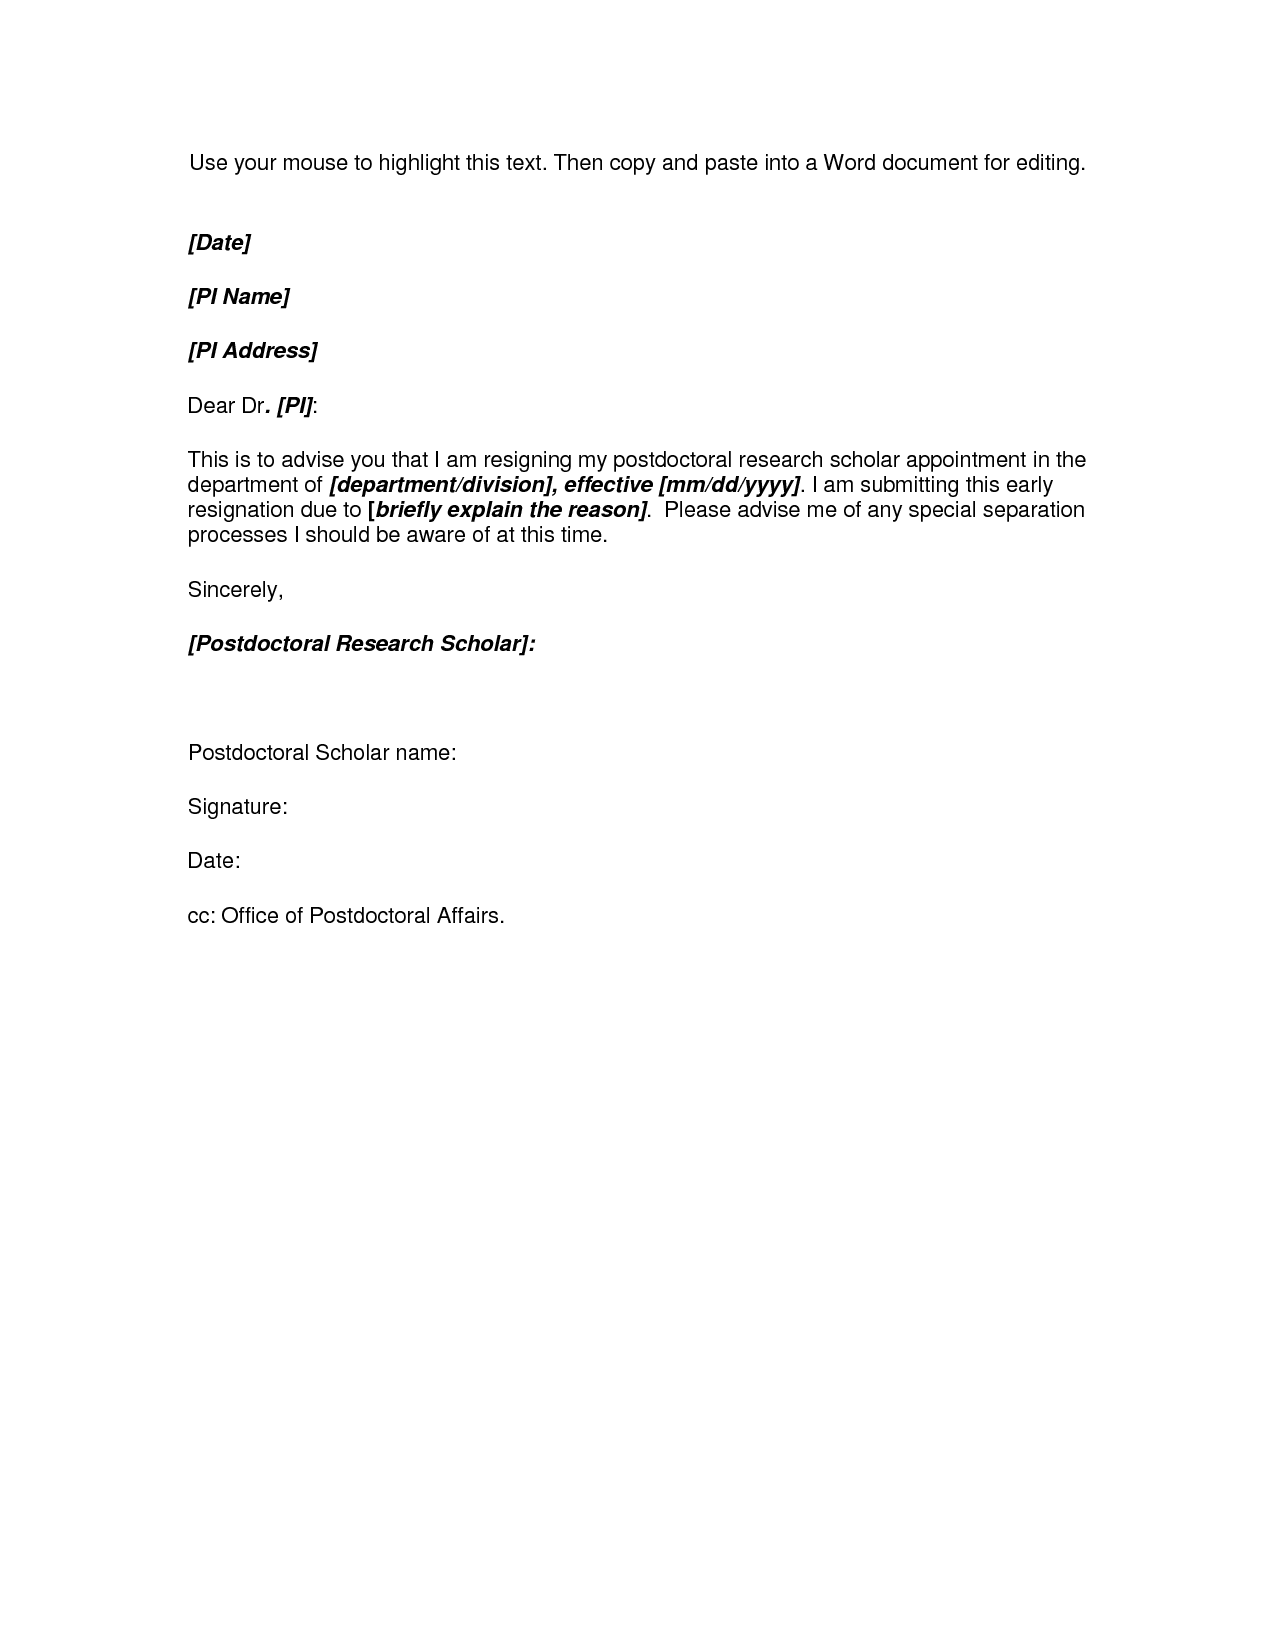 Genial Word Format Of Resignation Letter Resignation Letter Example 10 Free Word  Excel Pdf Format, 18 Photos Of Template Of Resignation Letter In Word  Marketing, ...